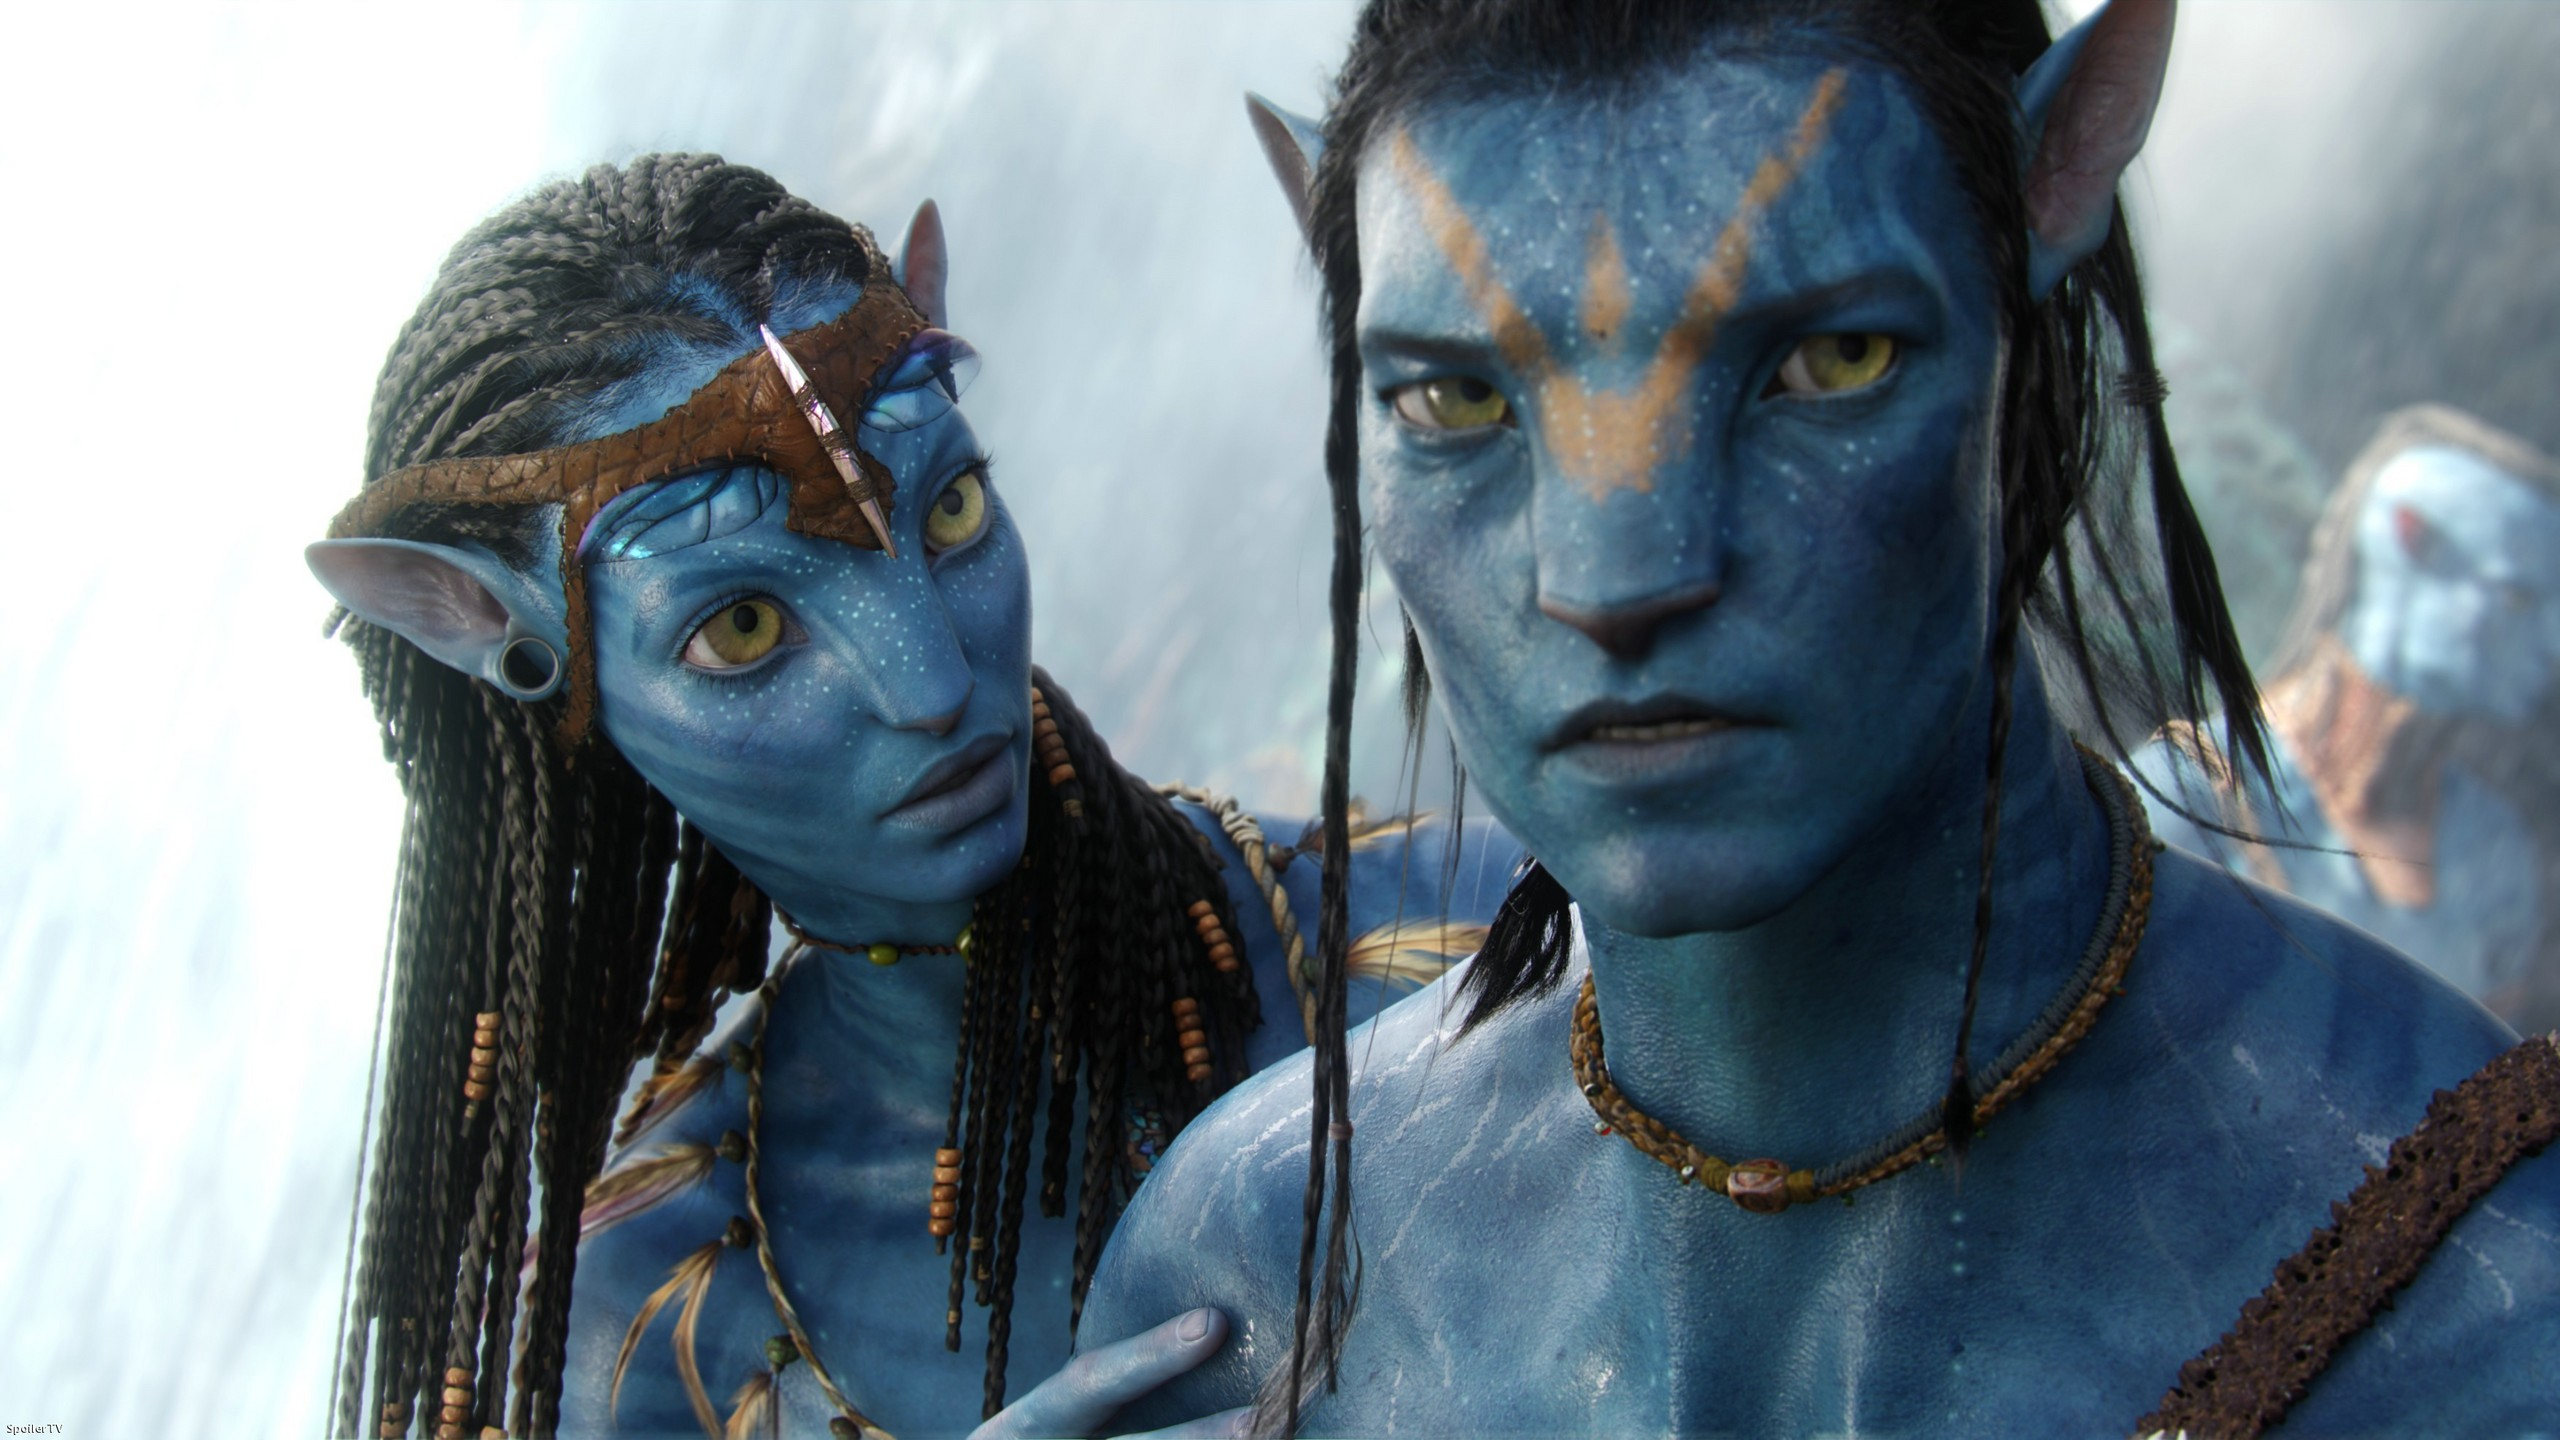 HQ avatar stills